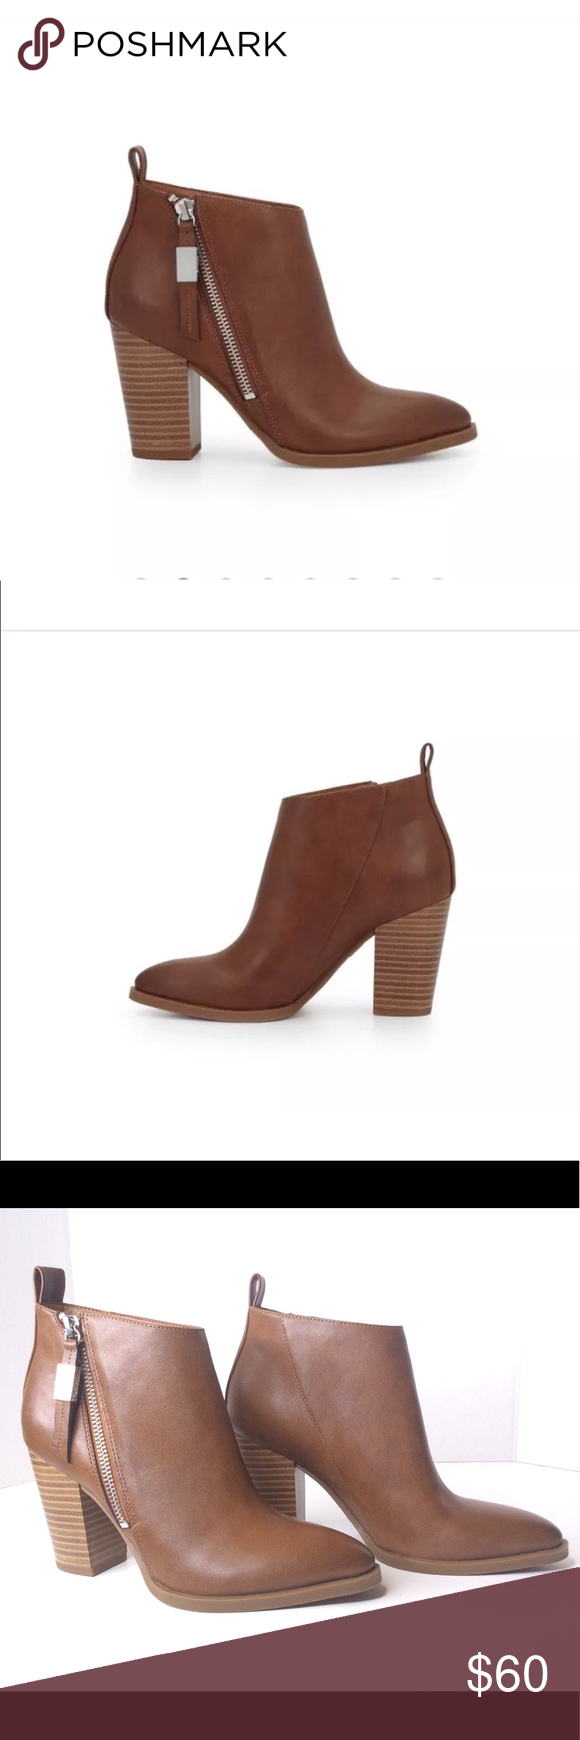 239fa11feb763b Circus Sam Edelman Blythe Ankle Boots Leather Tan new without defects Circus  By Sam Edelman Blythe